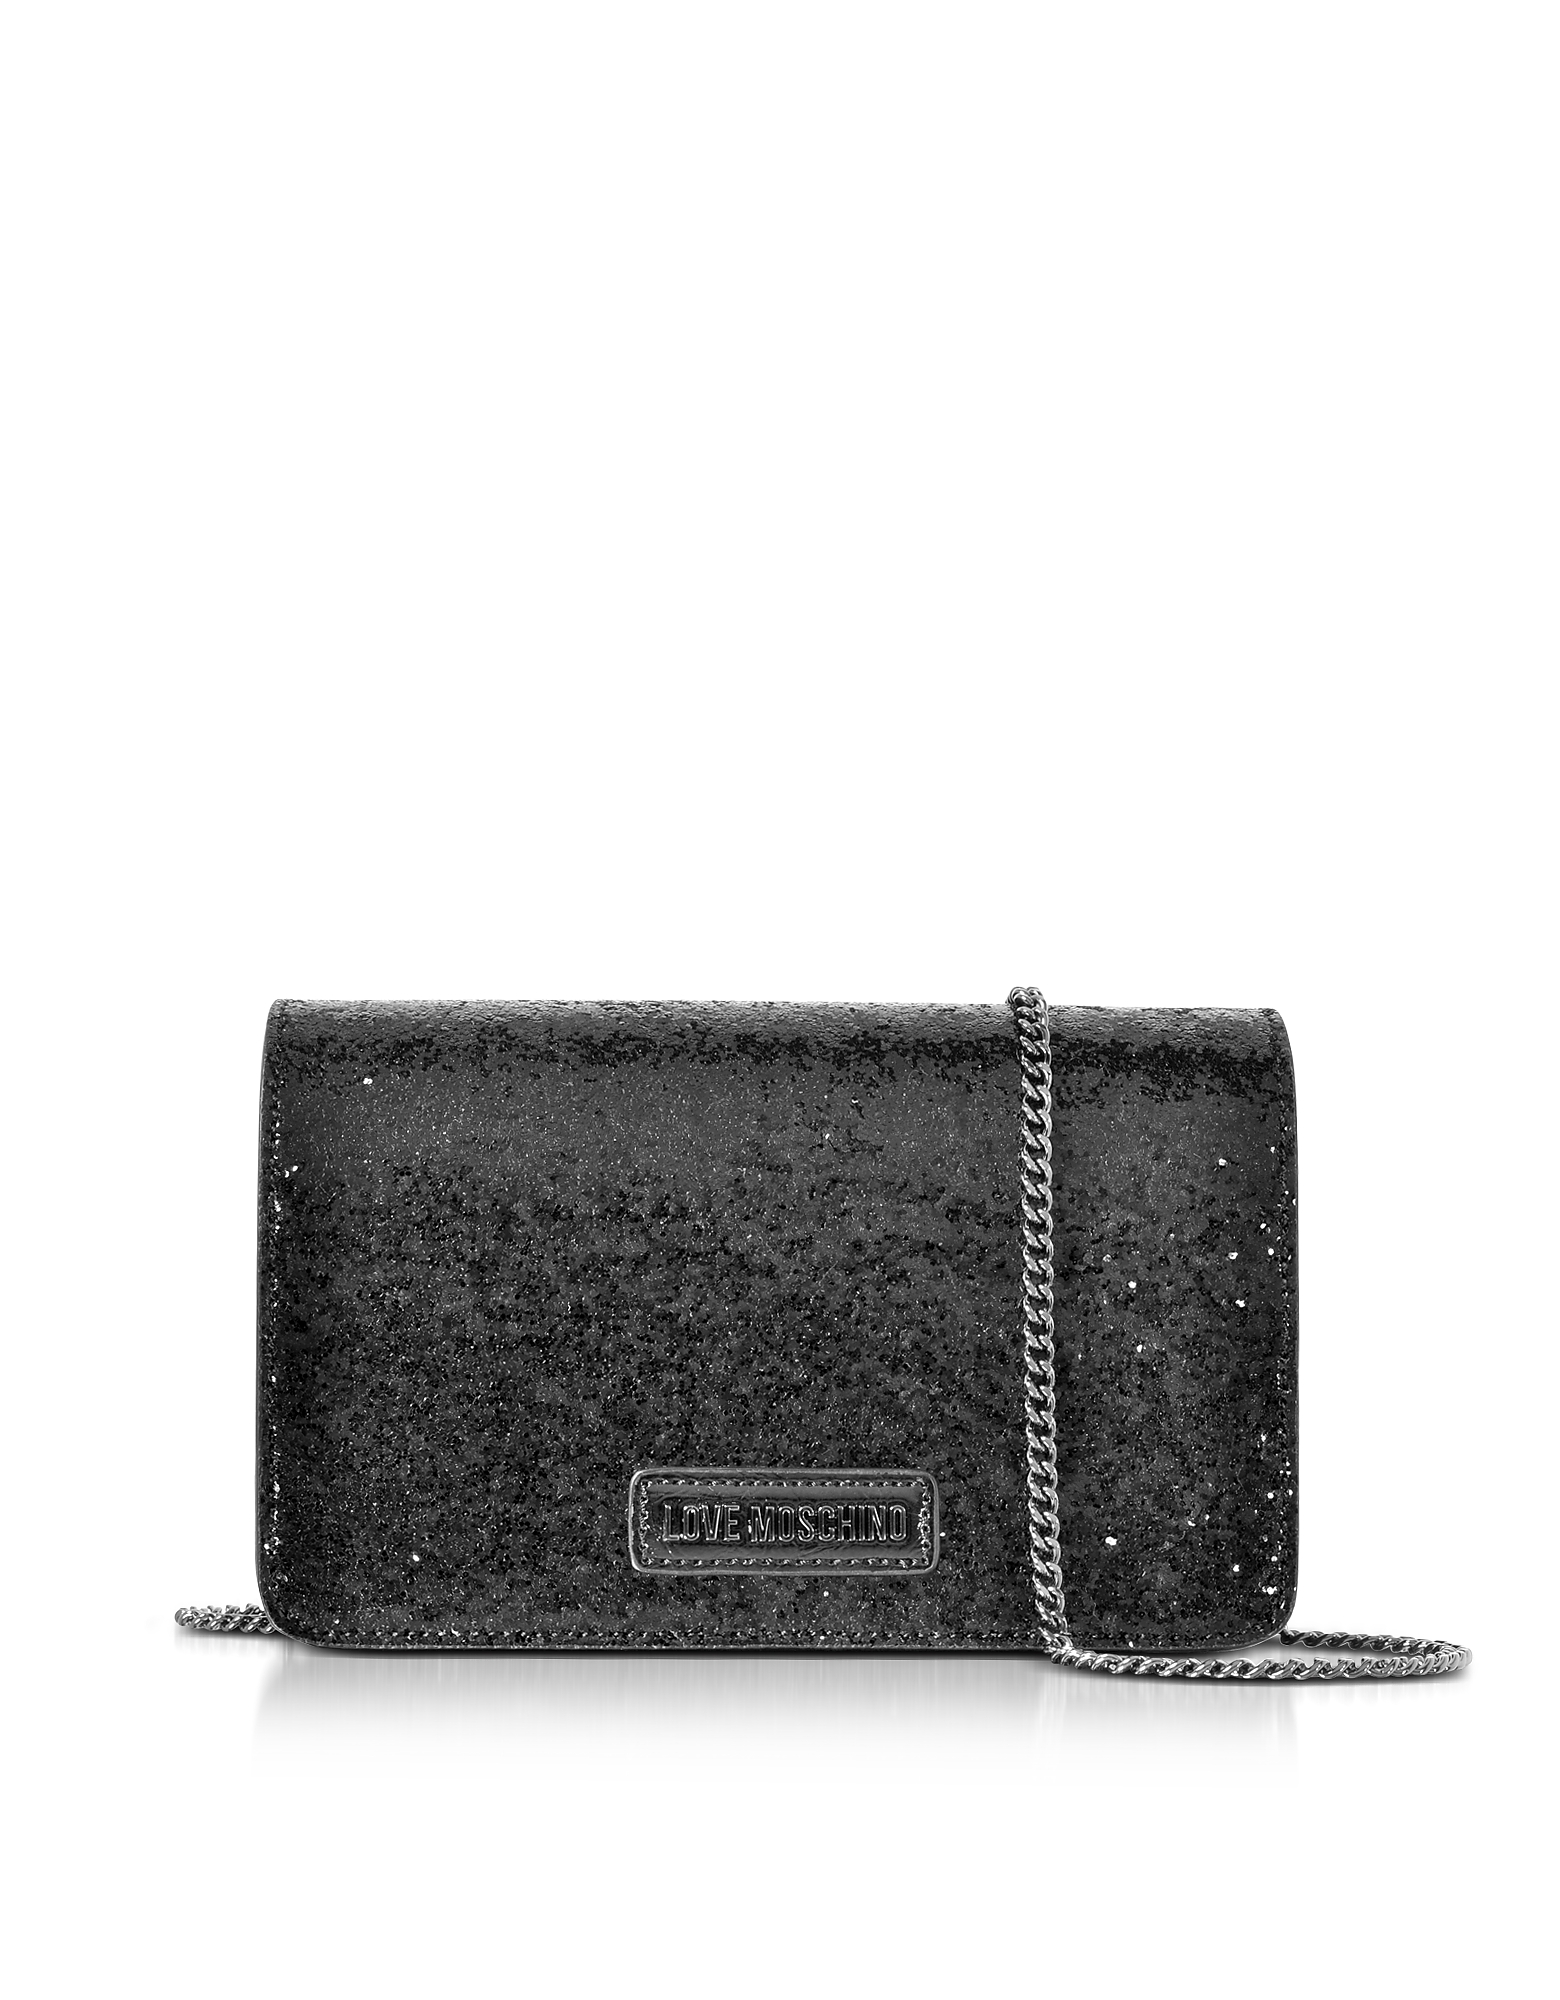 Love Moschino Handbags, Evening Bag Black Eco-Leather Clutch w/Chain Strap